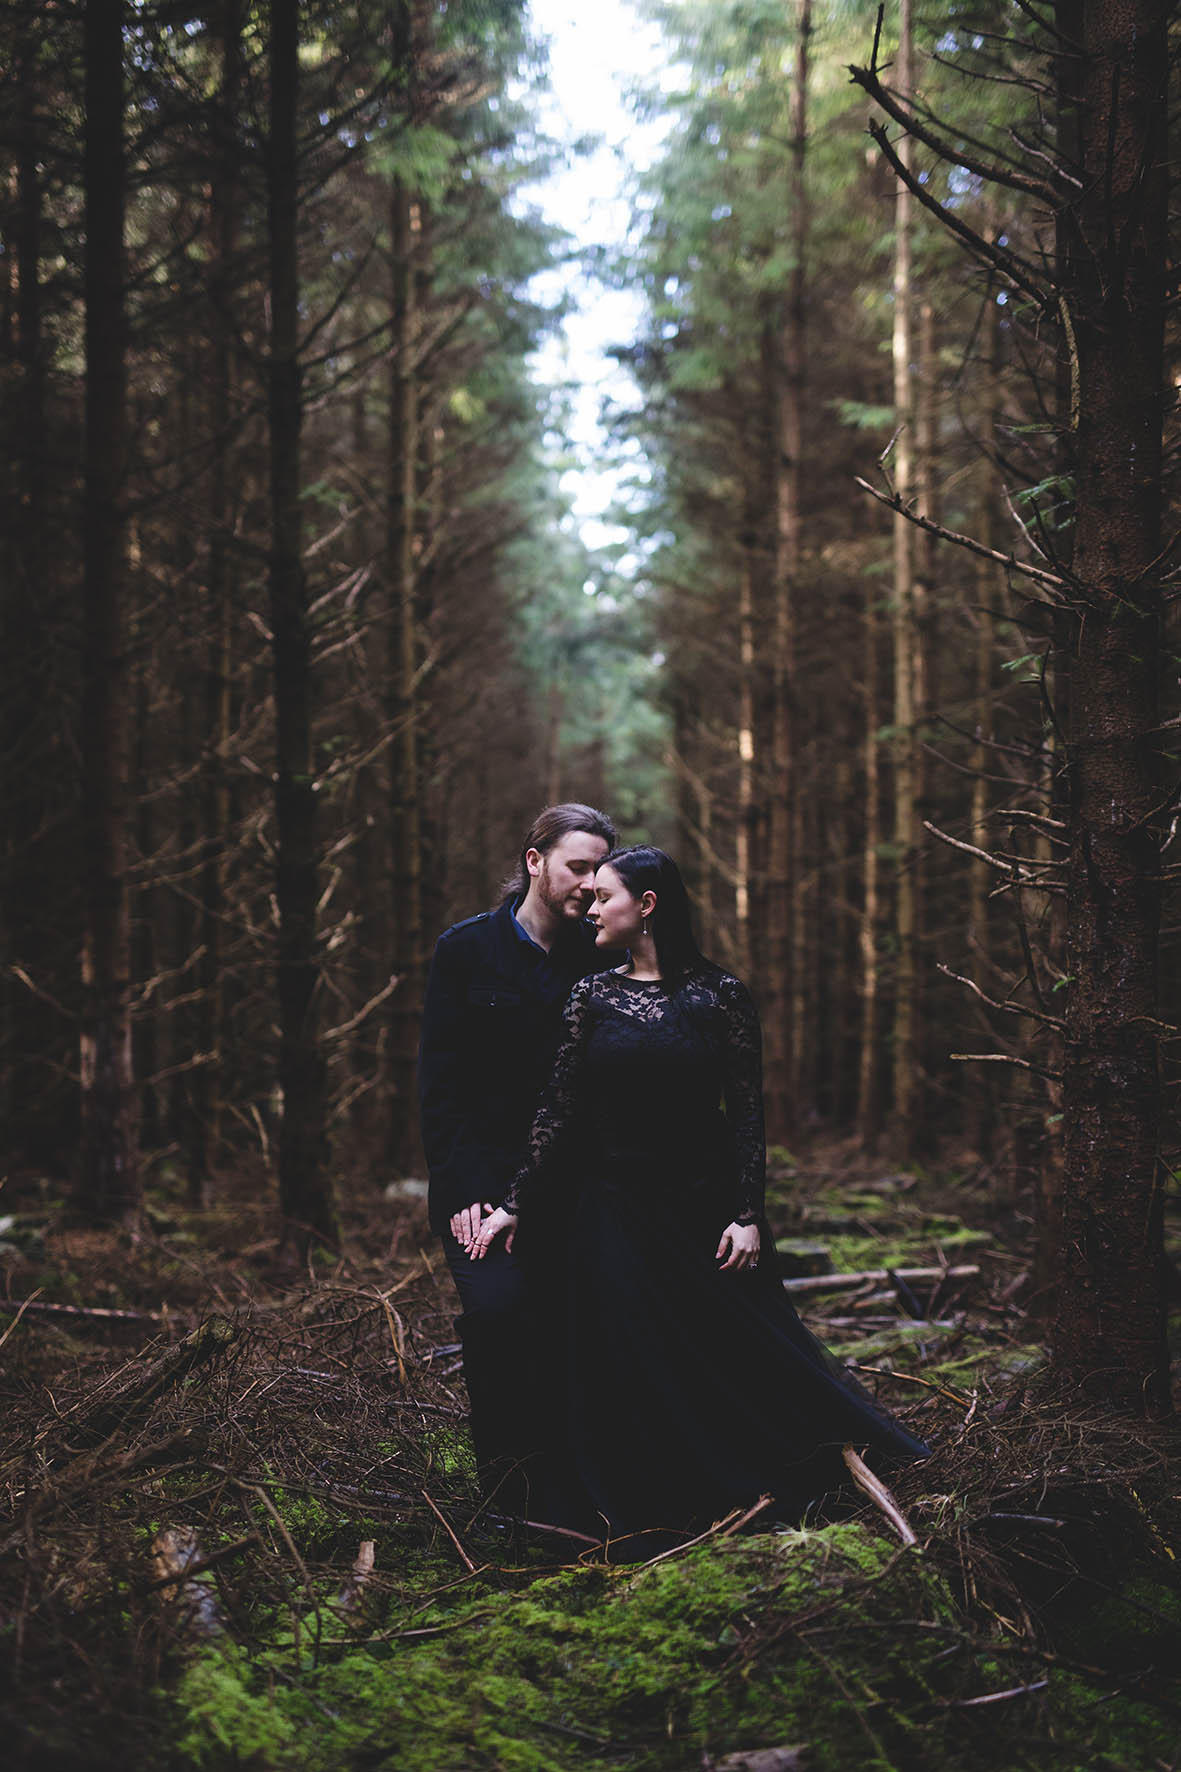 Winter couples portrait session in the wicklow mountains woodland